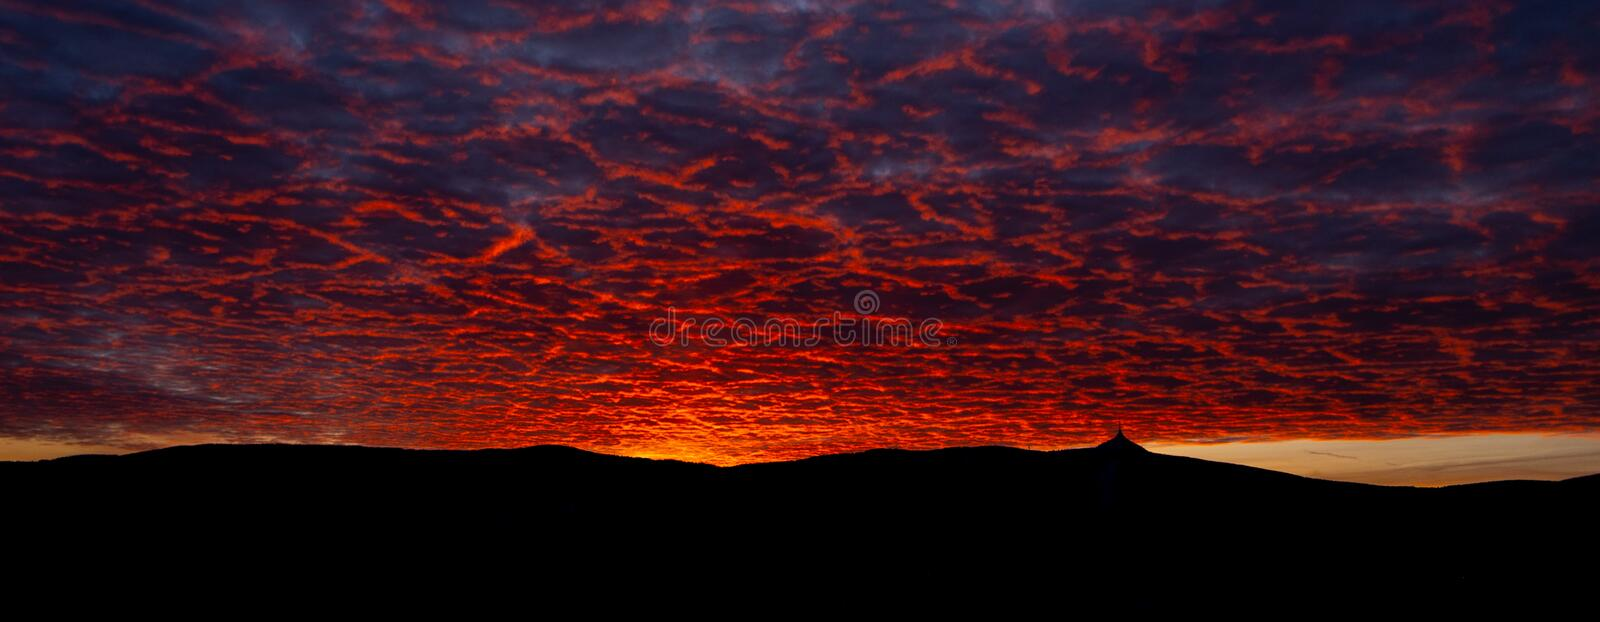 Silhouette of Jested mountain at sunset time with beautyifully illuminated evening sky, Liberec, Czech Republic.  stock image